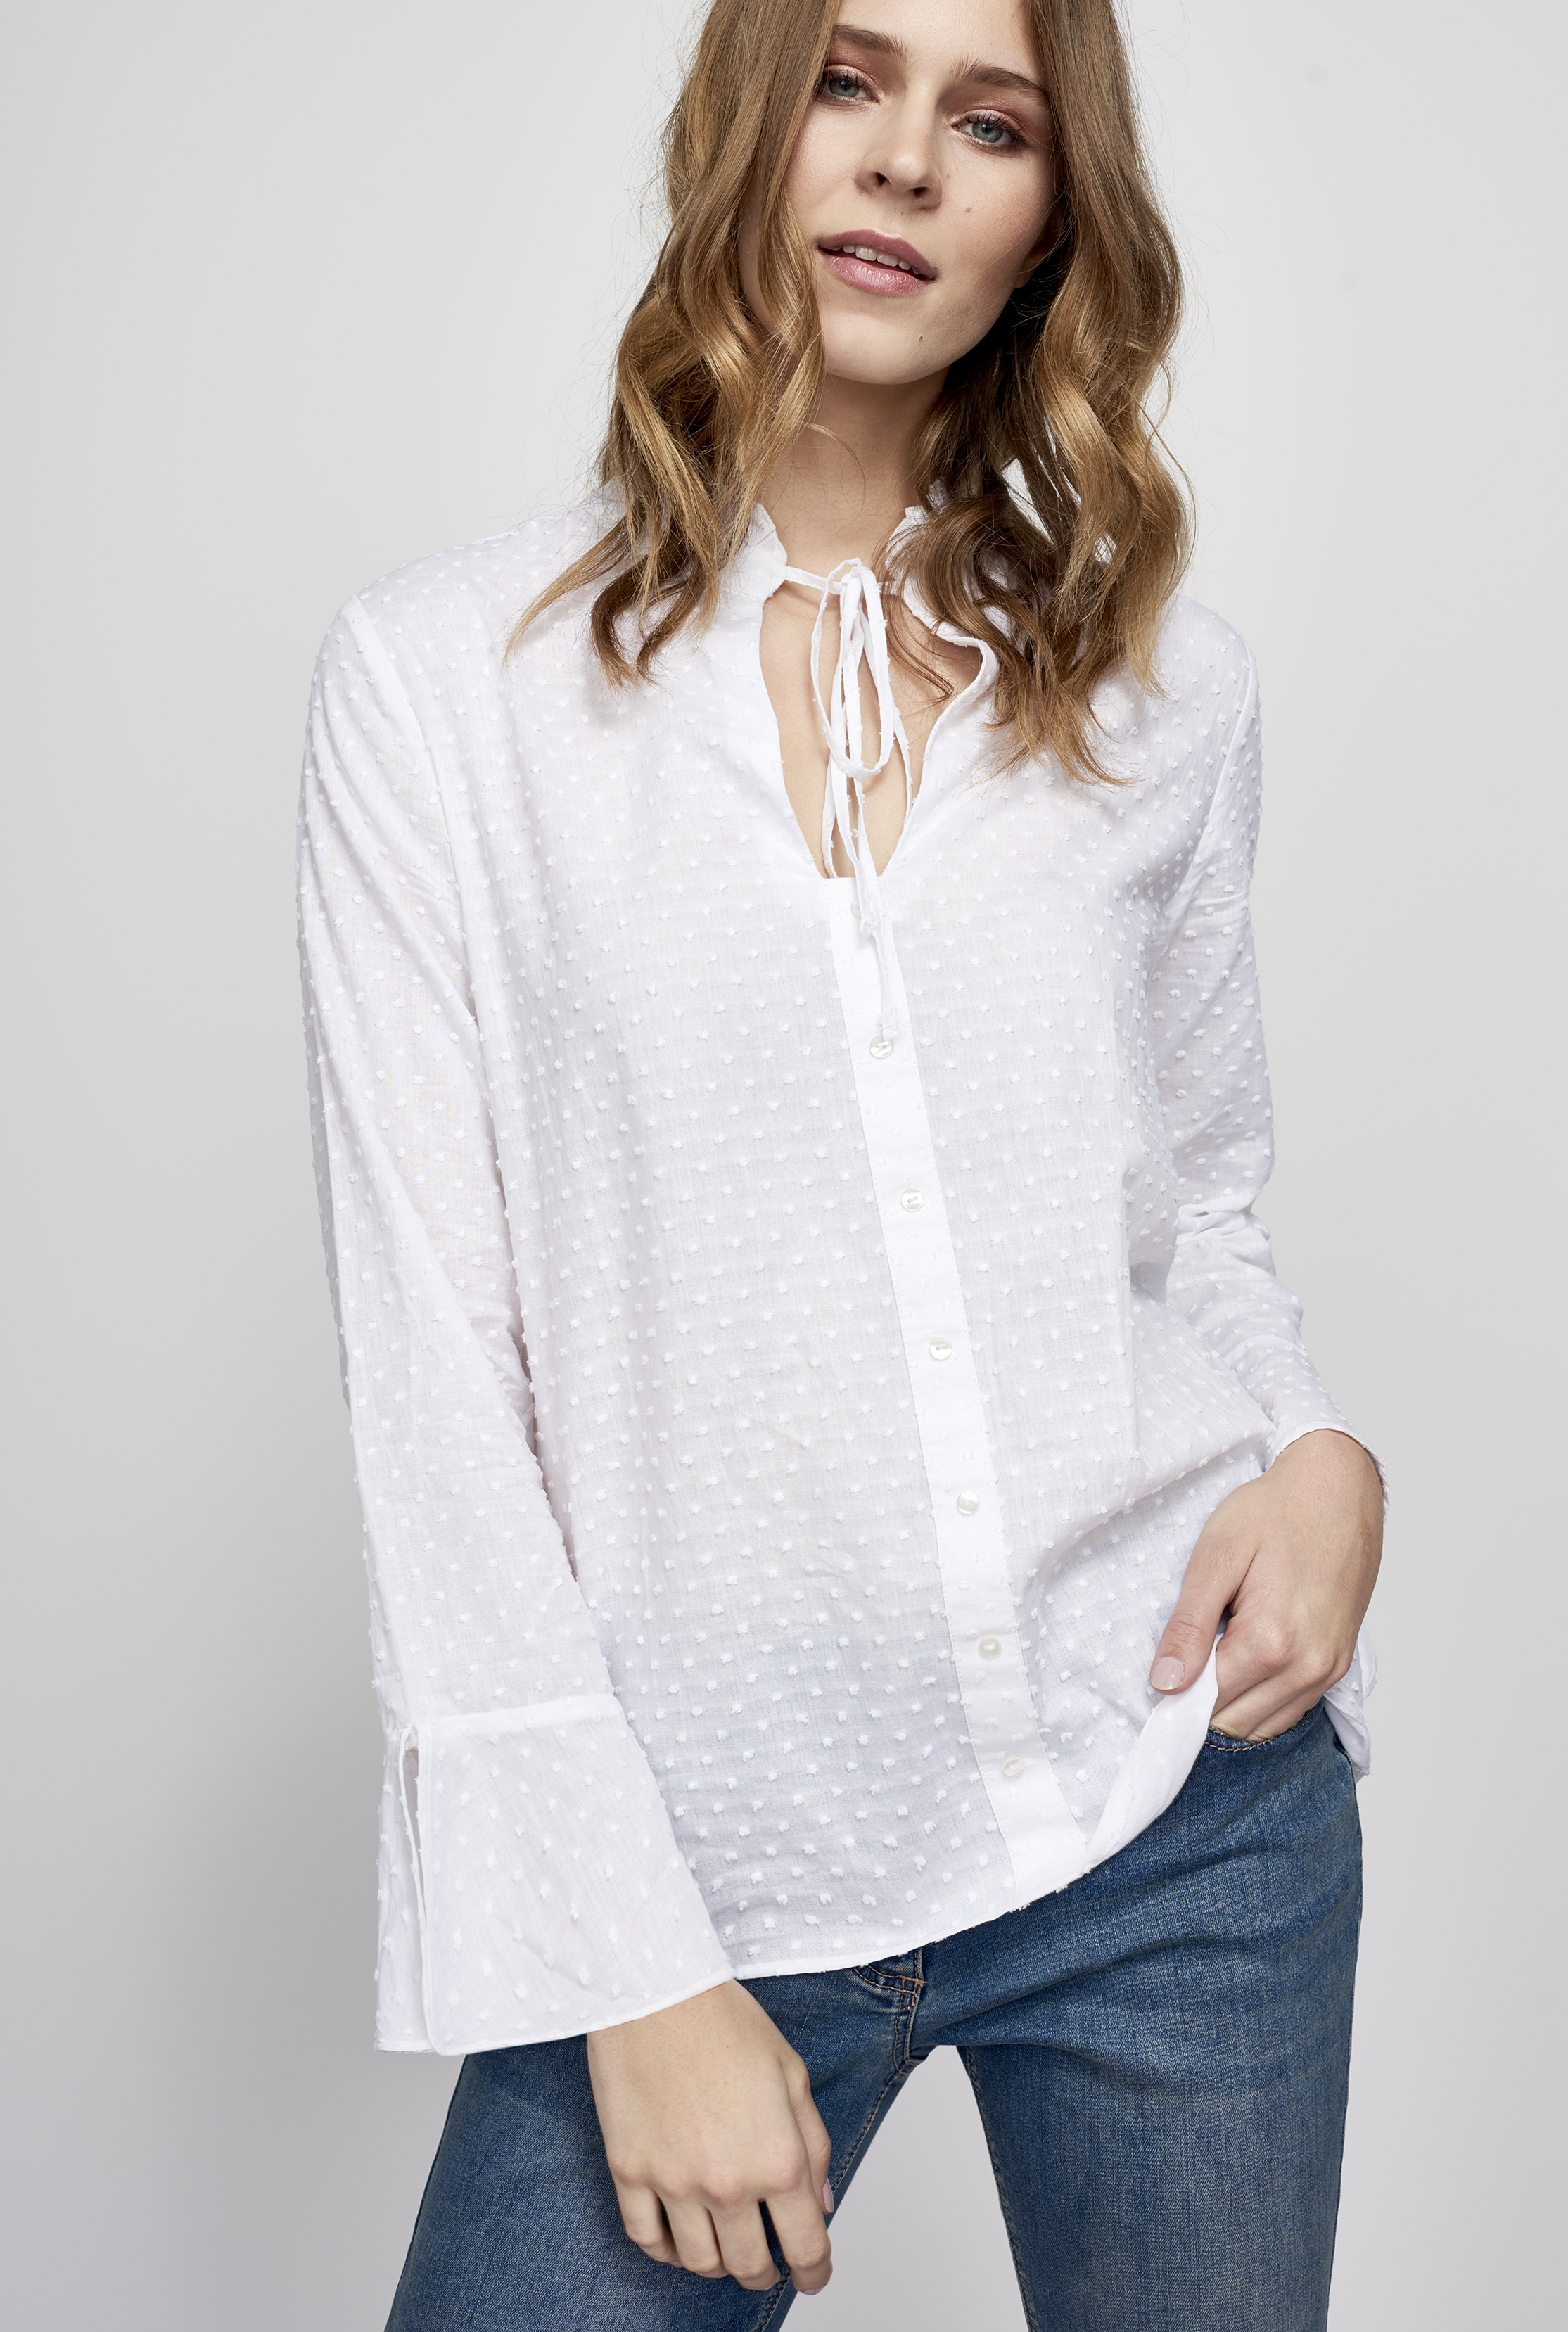 Y.A.S Tall Laure Blouse